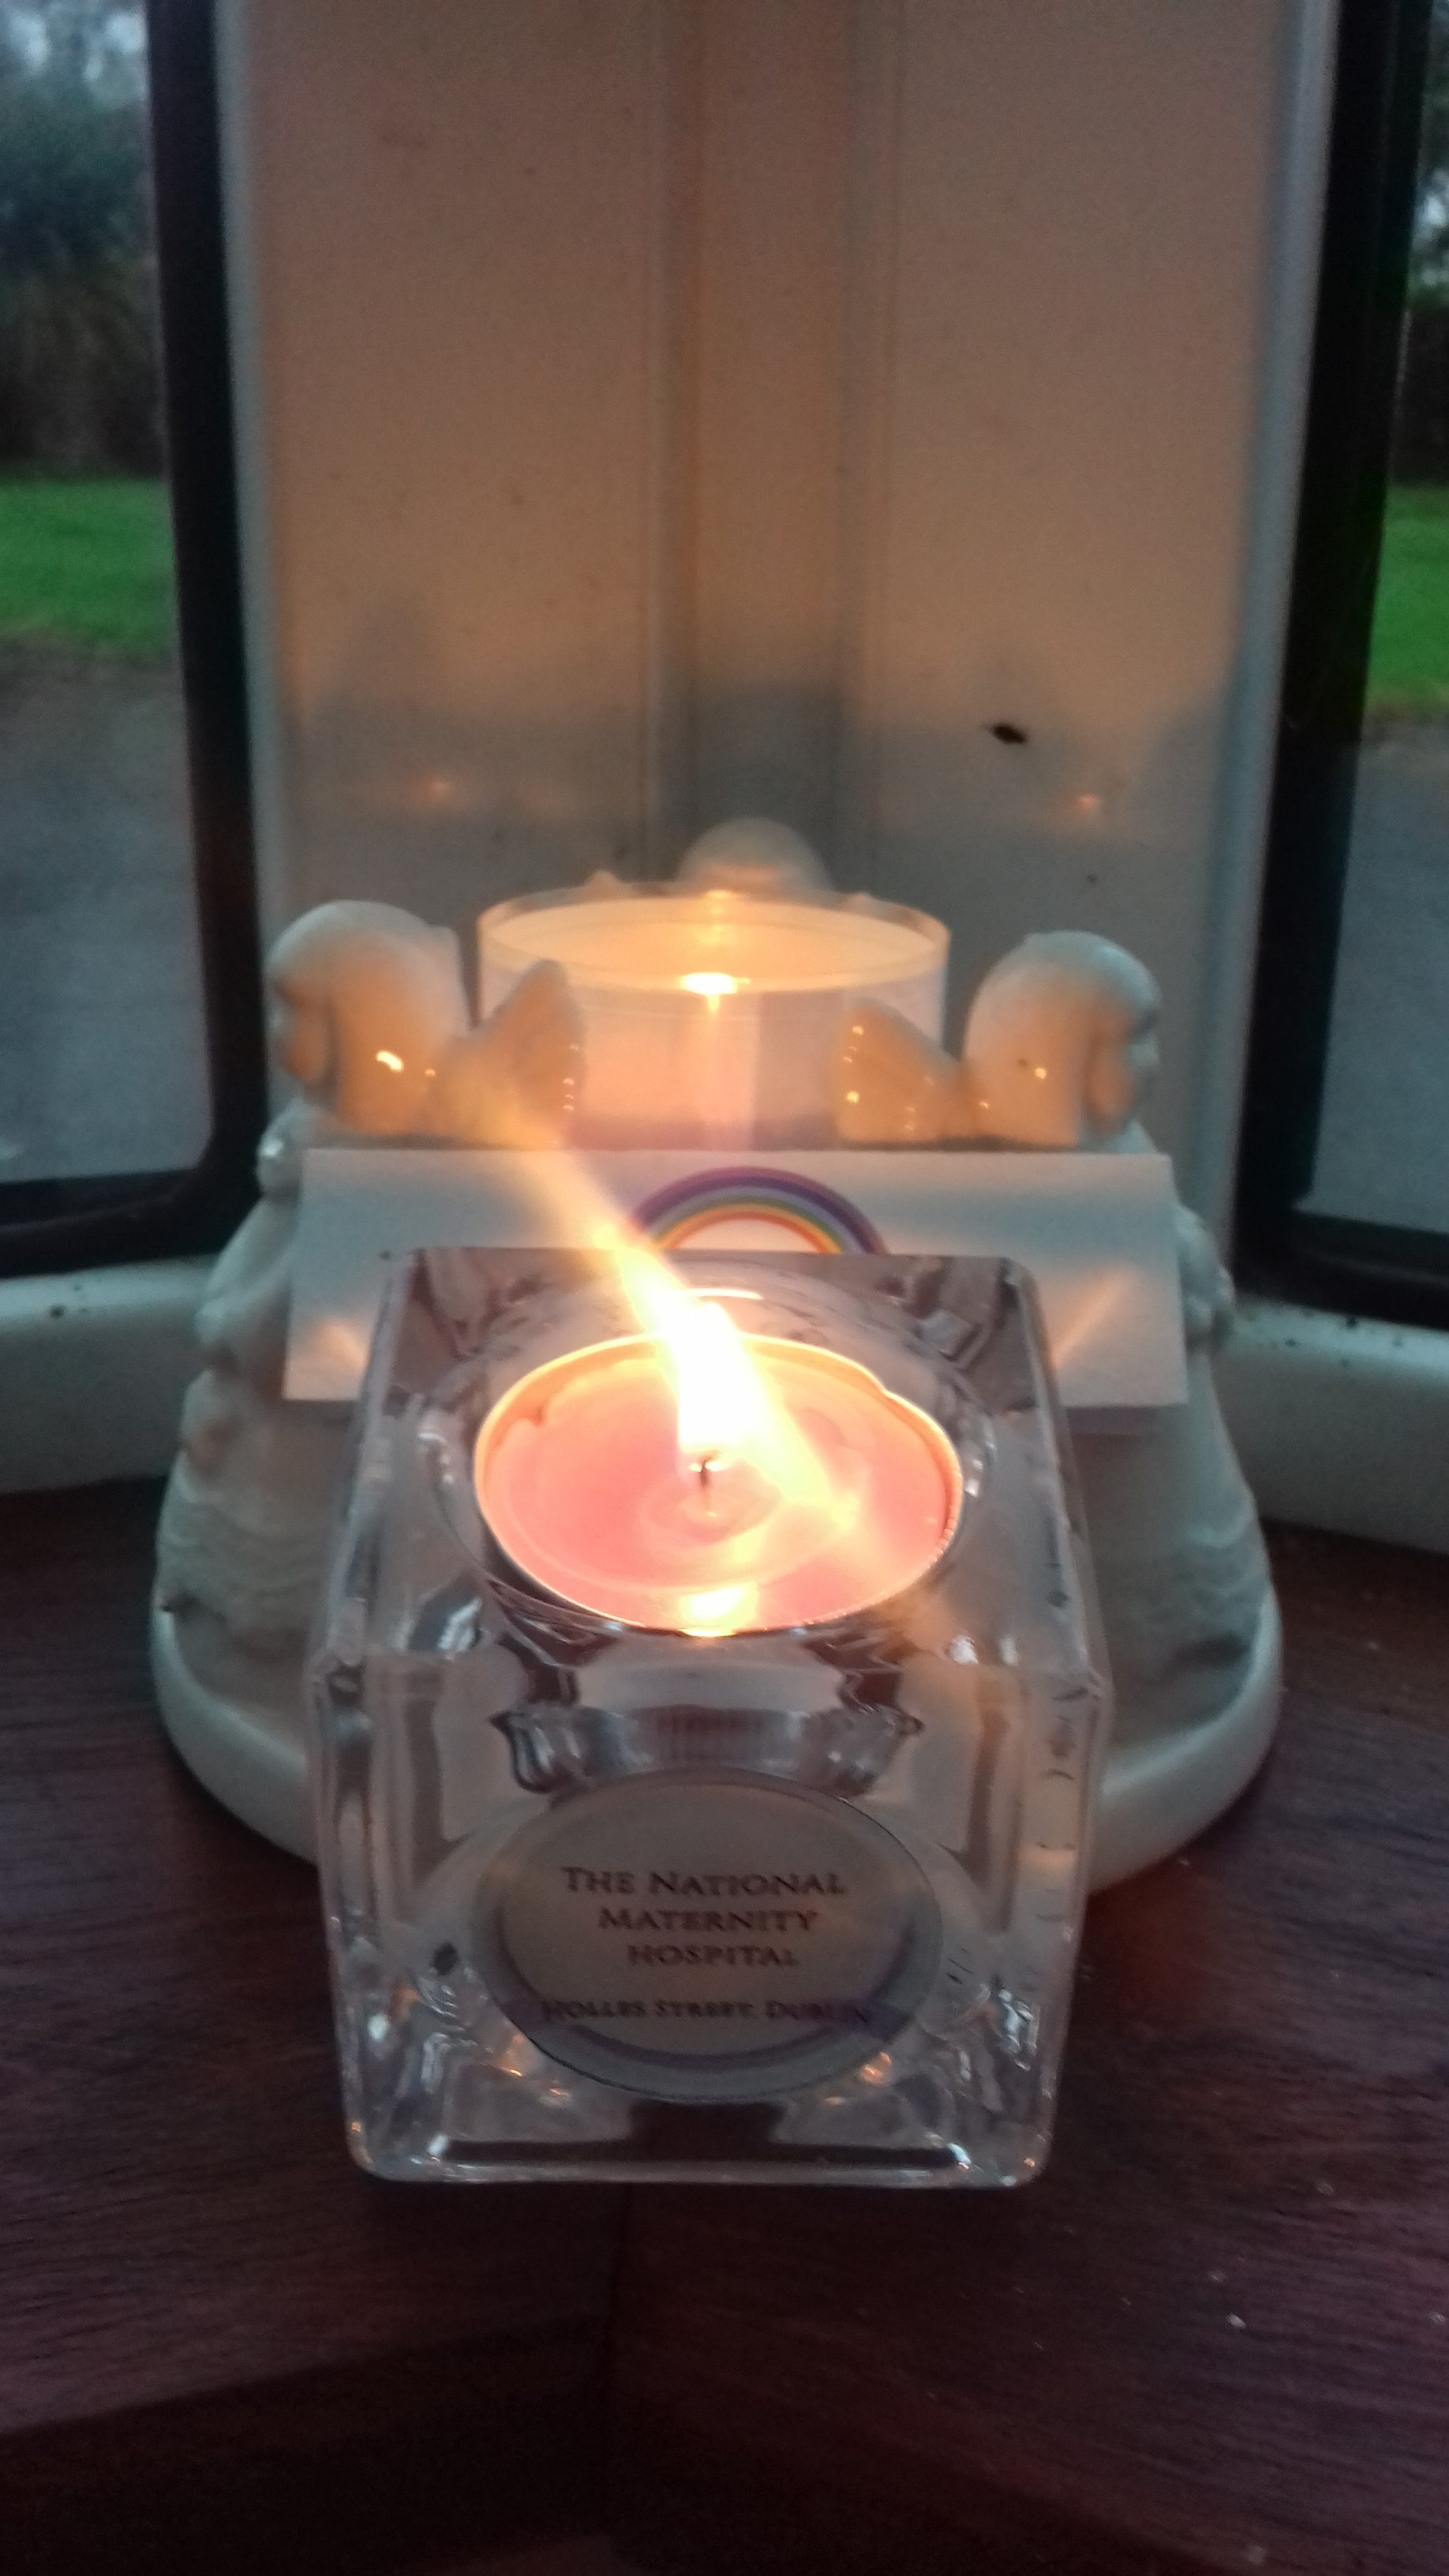 National Maternity Hospital Remembrance Candle